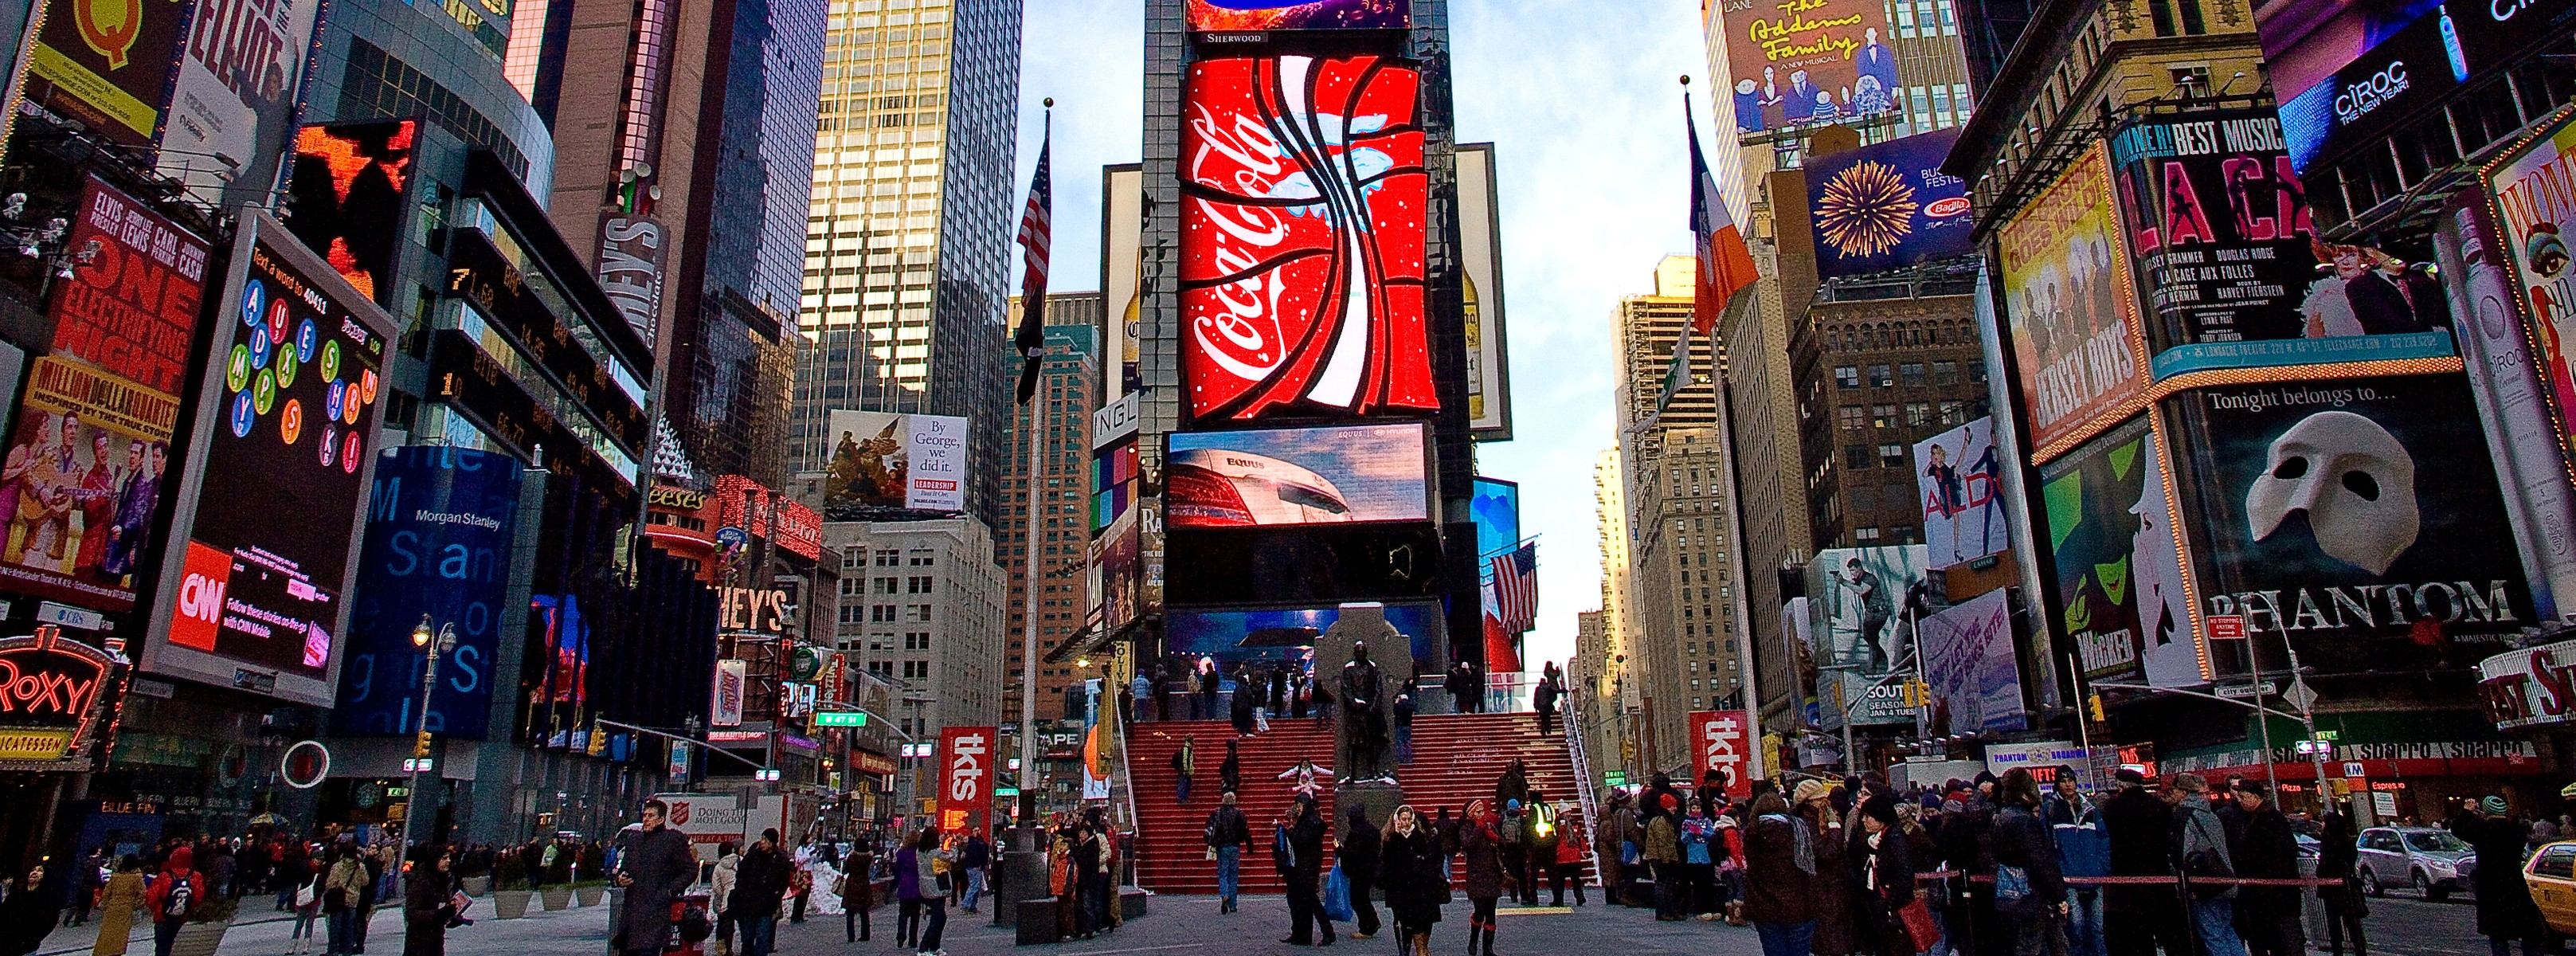 The 10 Best Restaurants In Times Square New York The Infatuation